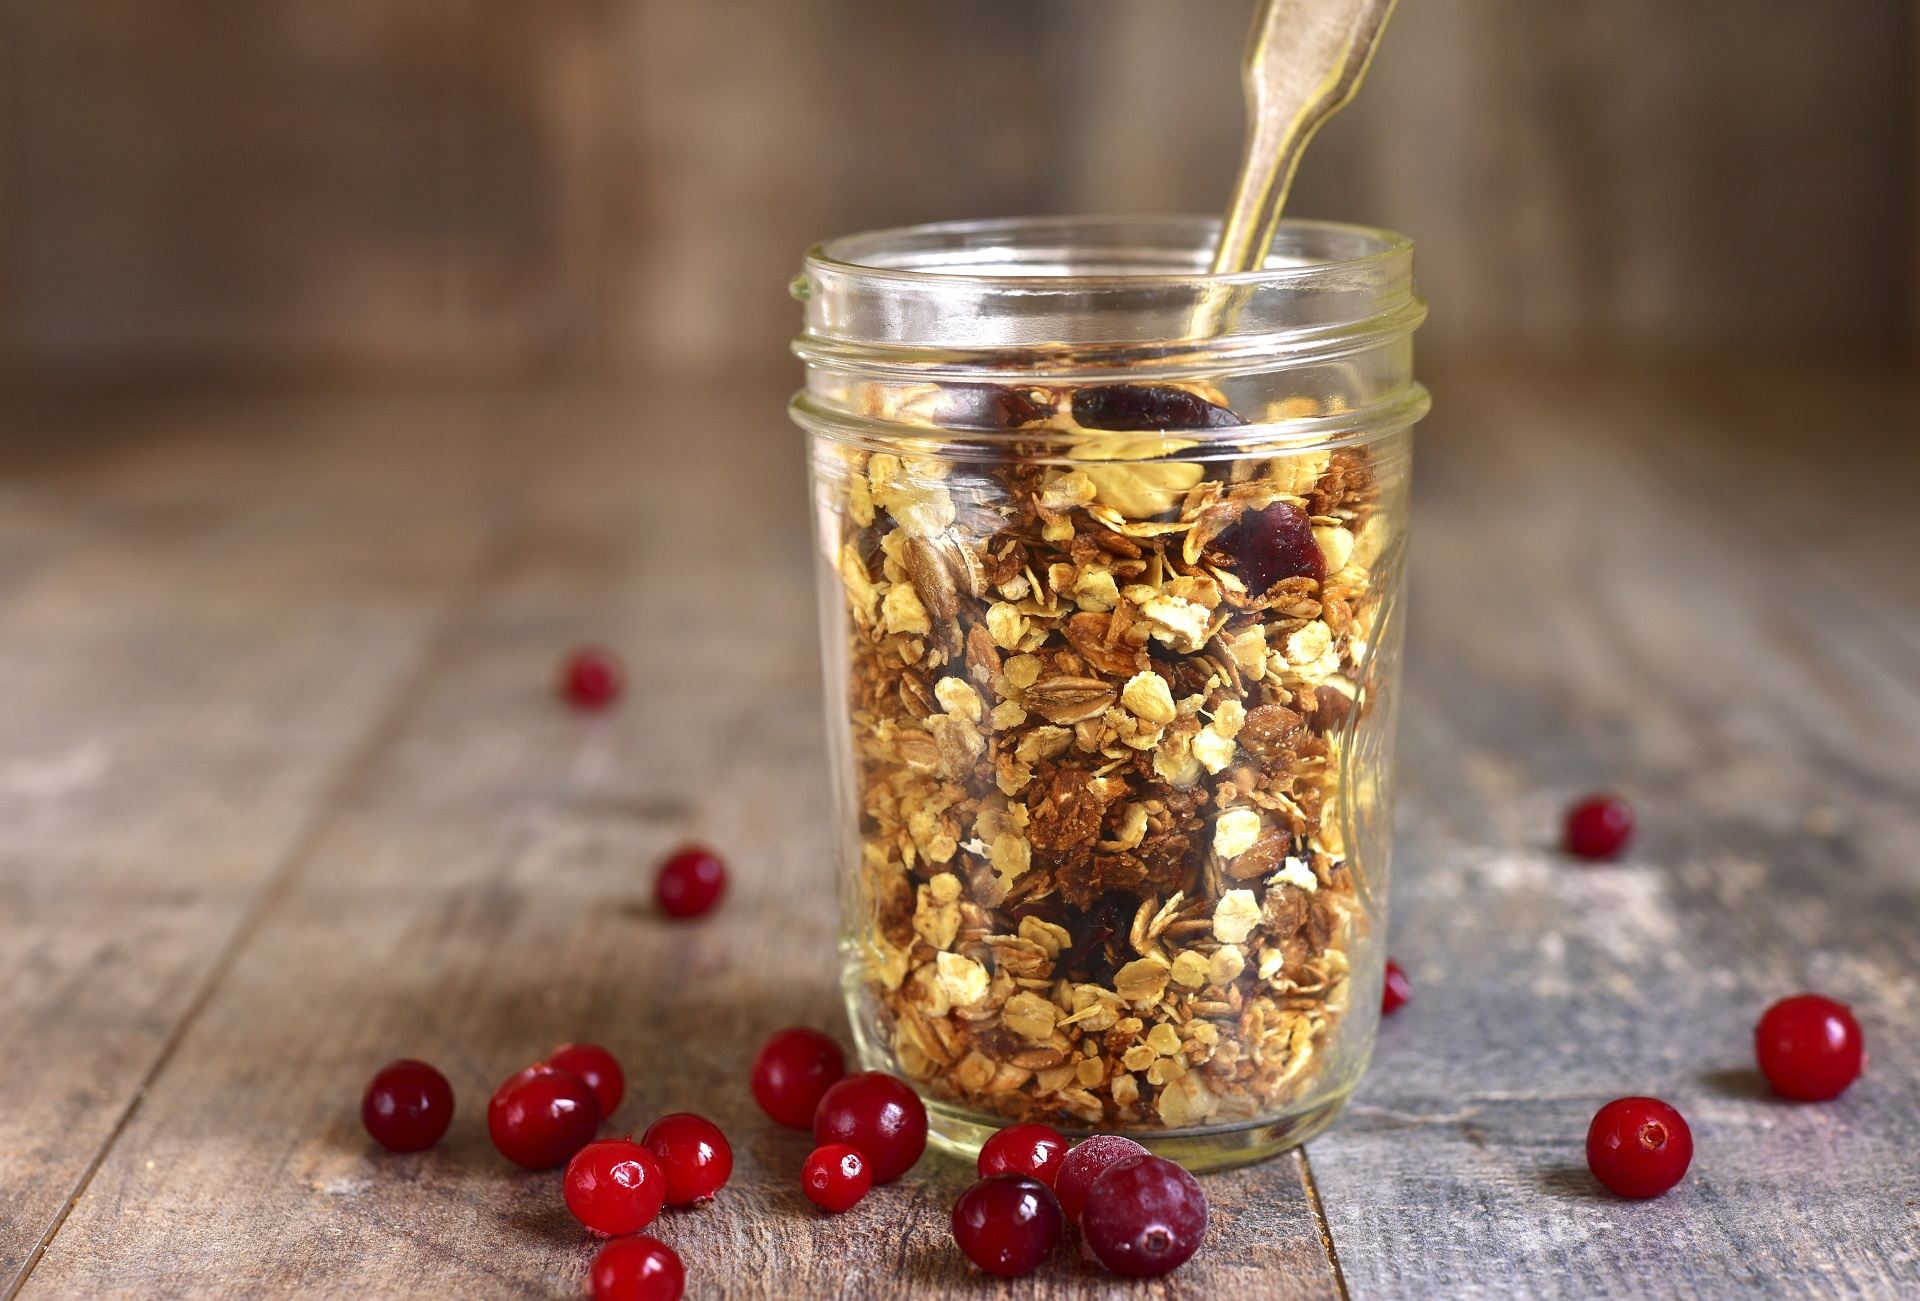 Easy granola recipe for gifting.